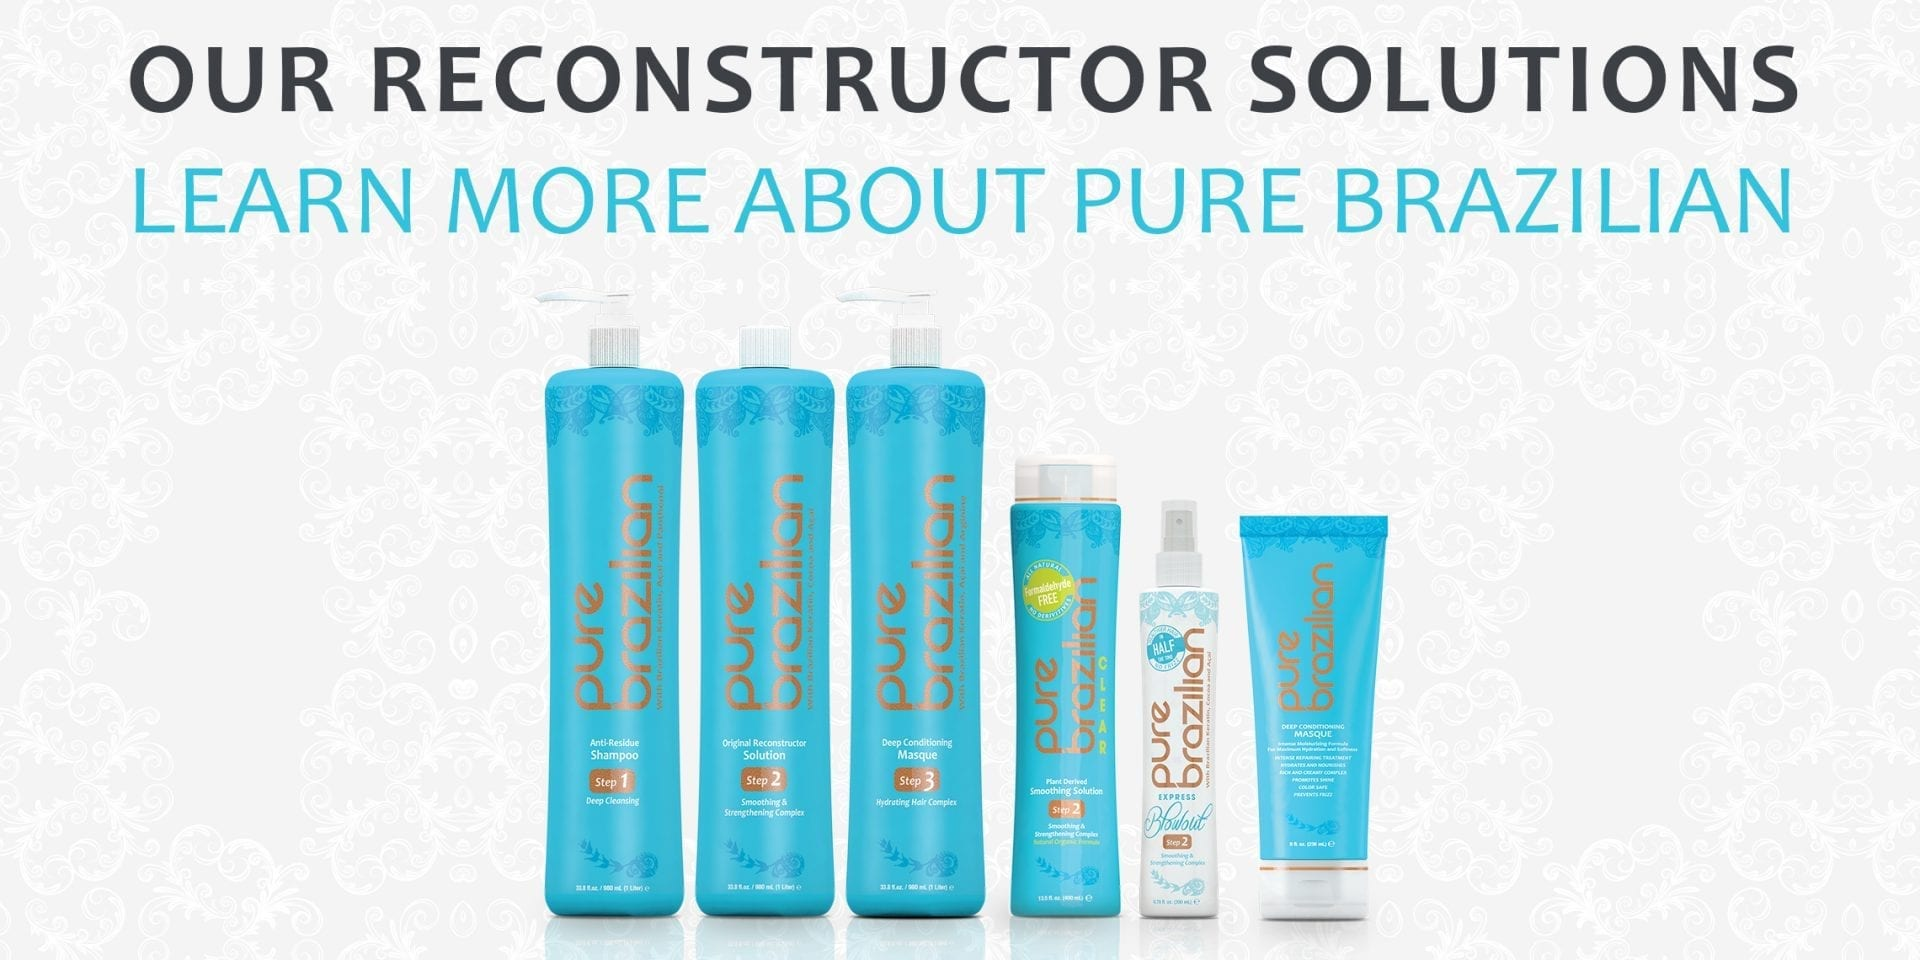 WE SELL OUR PROFESSIONAL SMOOTHING PRODUCTS TO CERTIFIED PURE BRAZILIAN STYLISTS AND SALONS ONLY